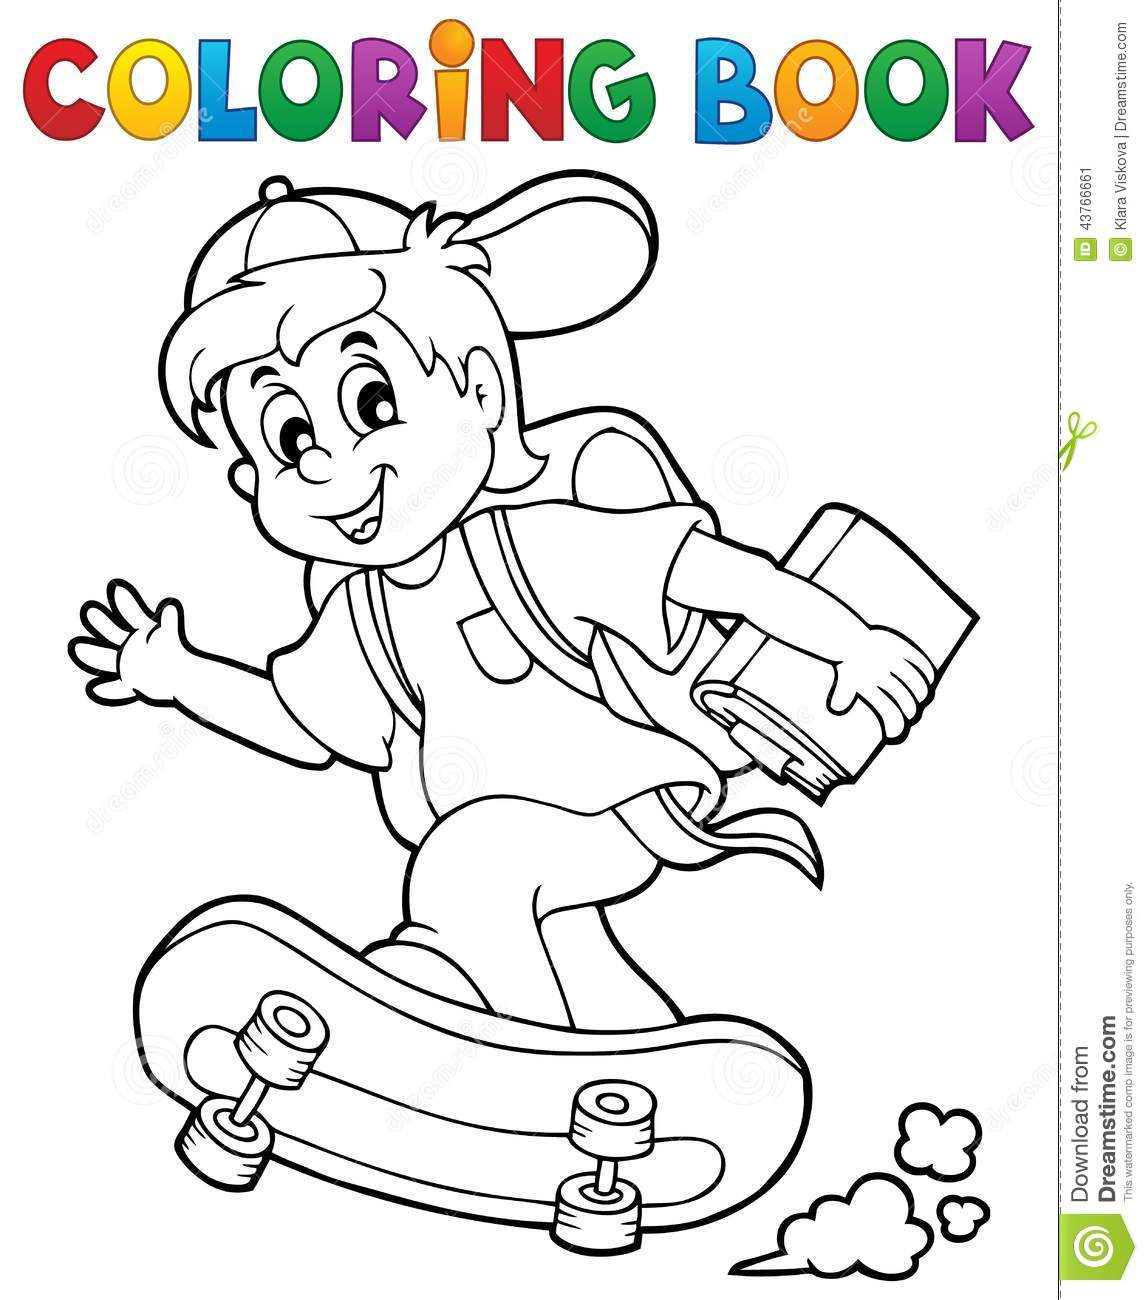 Coloring book school - Coloring Book School Boy Theme 1 Stock Vector Image 43766661